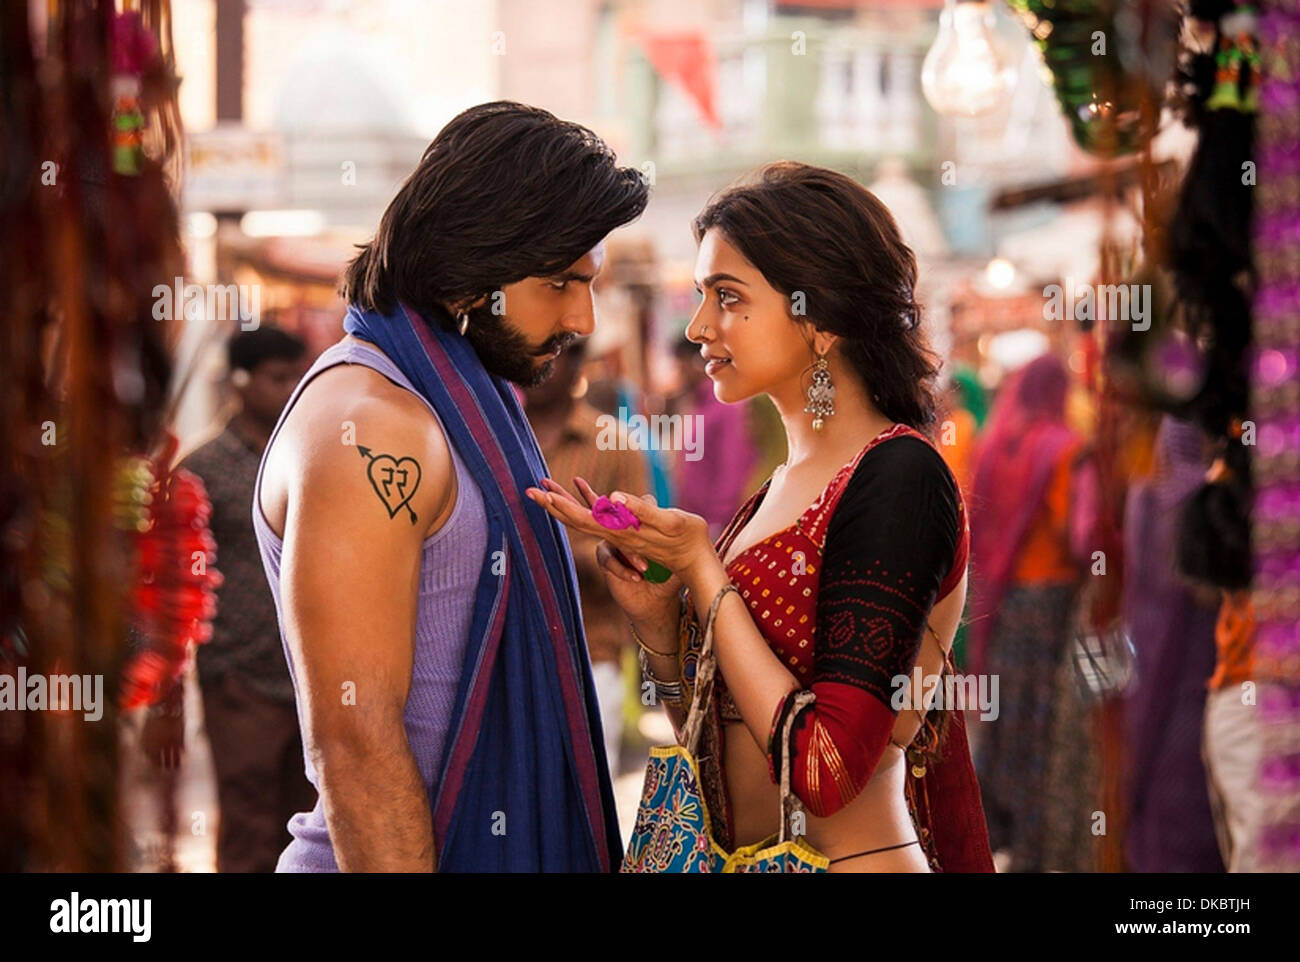 ram-leela 2013 eros international film with ranveer singh and